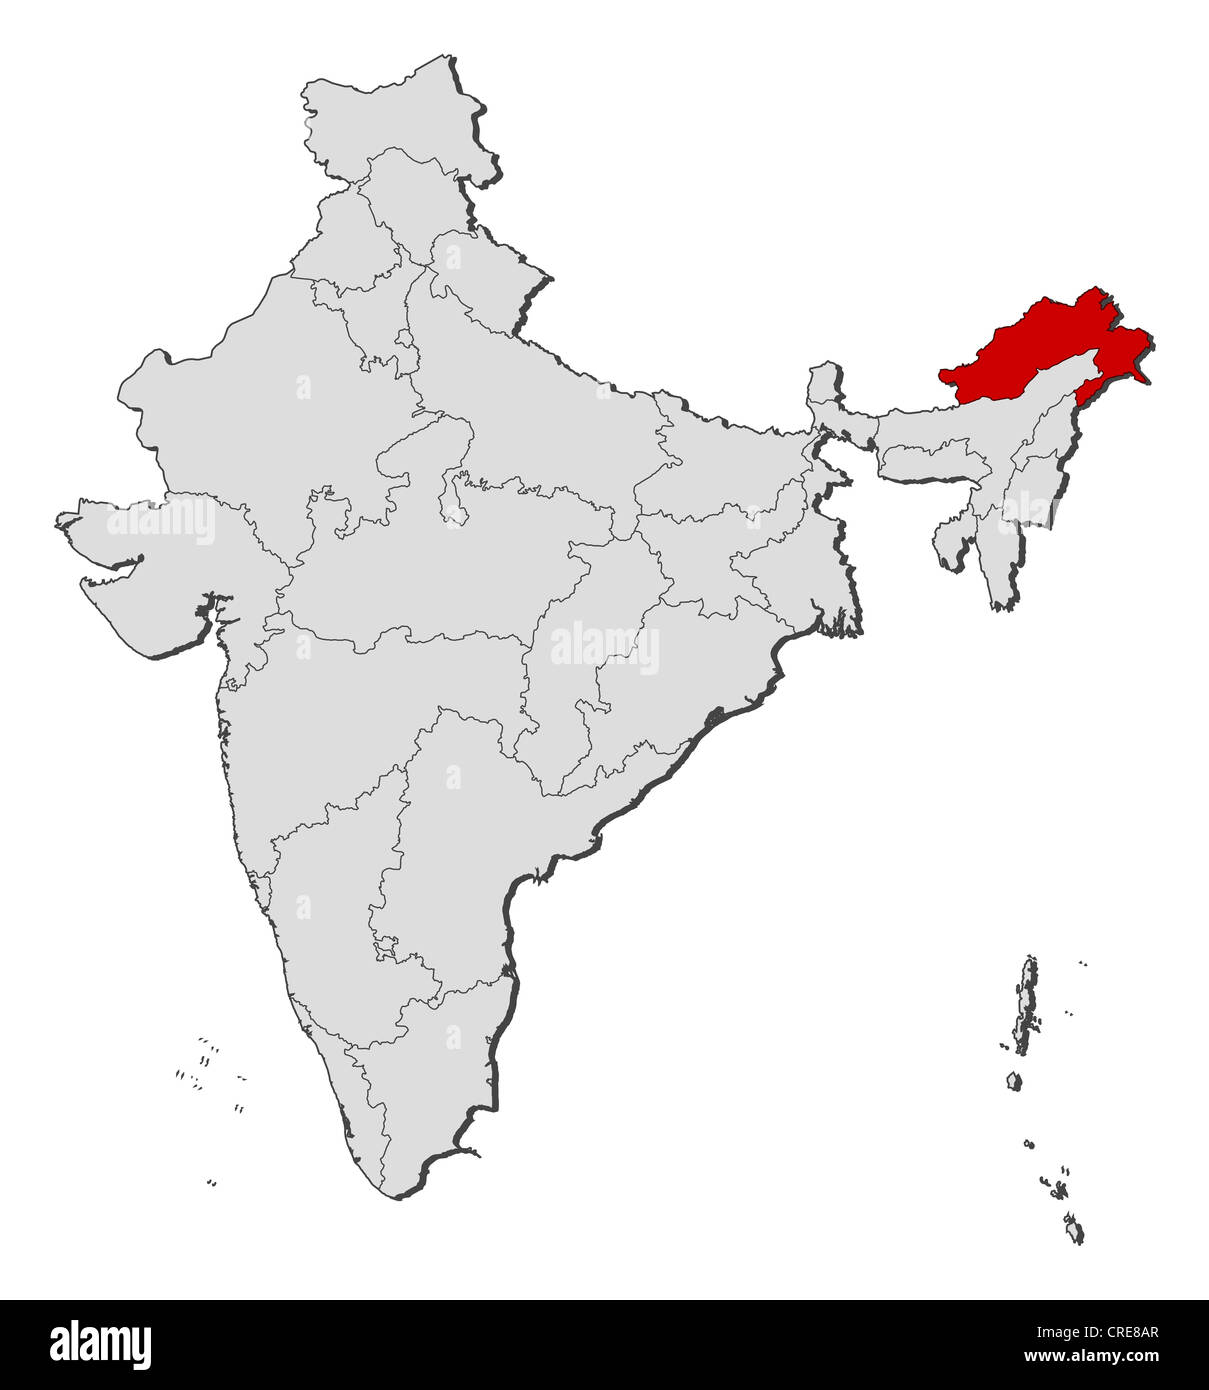 Political map india several pradesh stock photos political map political map of india with the several states where arunachal pradesh is highlighted stock gumiabroncs Choice Image